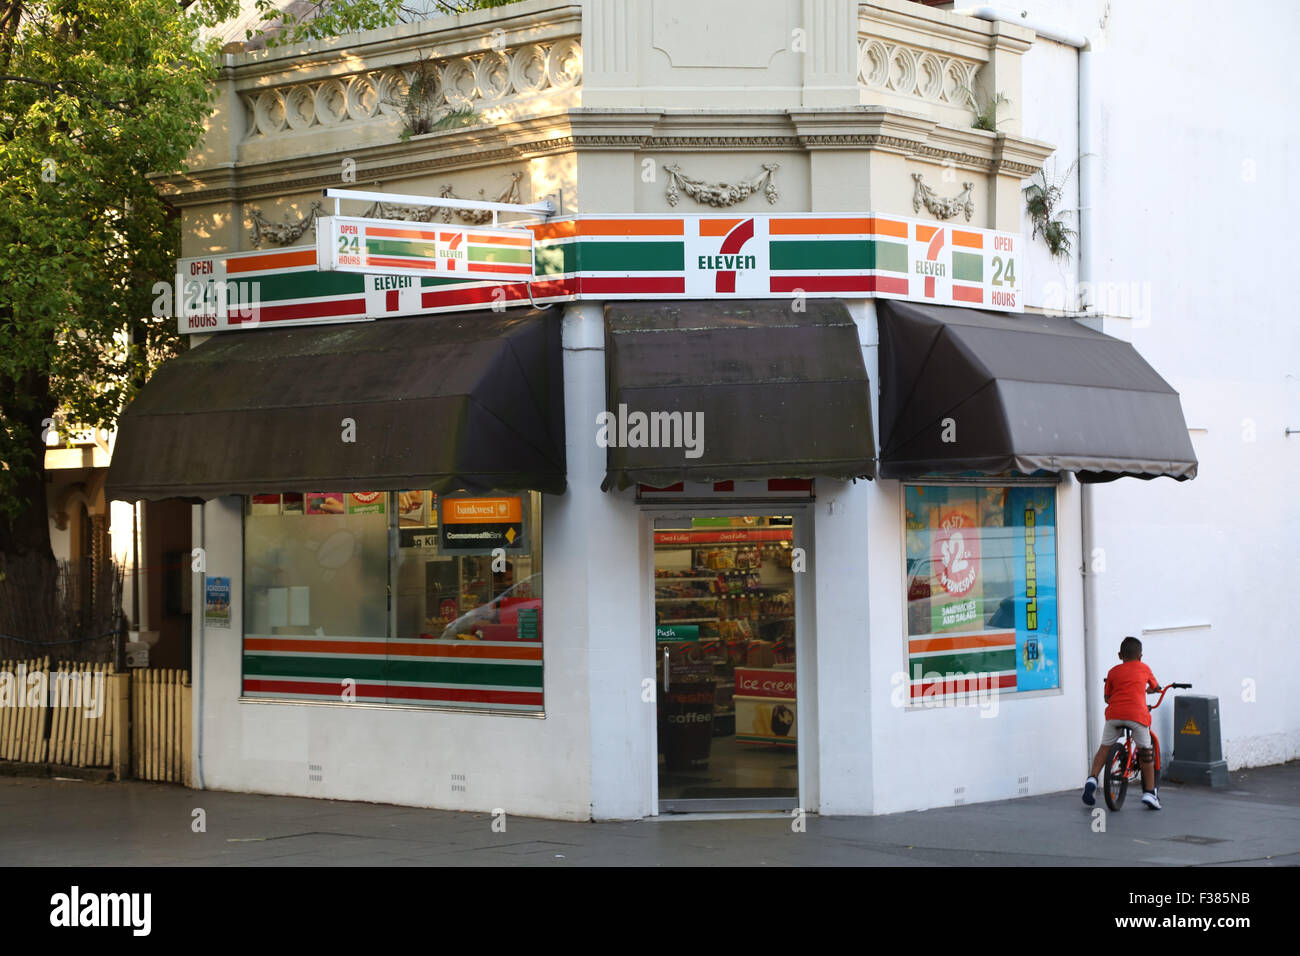 7 Eleven Store Stock Photos Amp 7 Eleven Store Stock Images